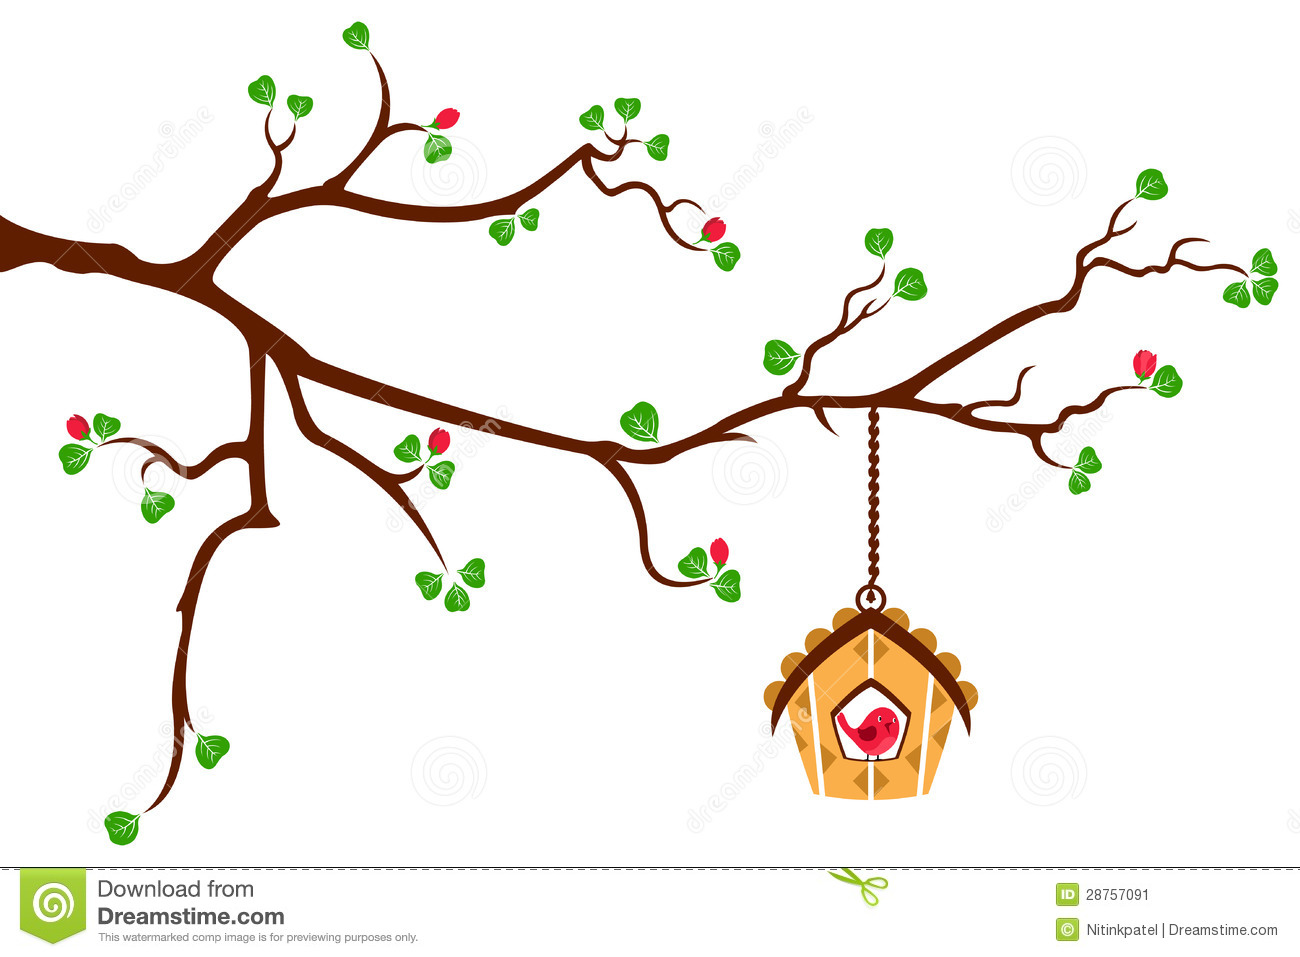 Brds clipart tree house Clipart Pivot on tree branch